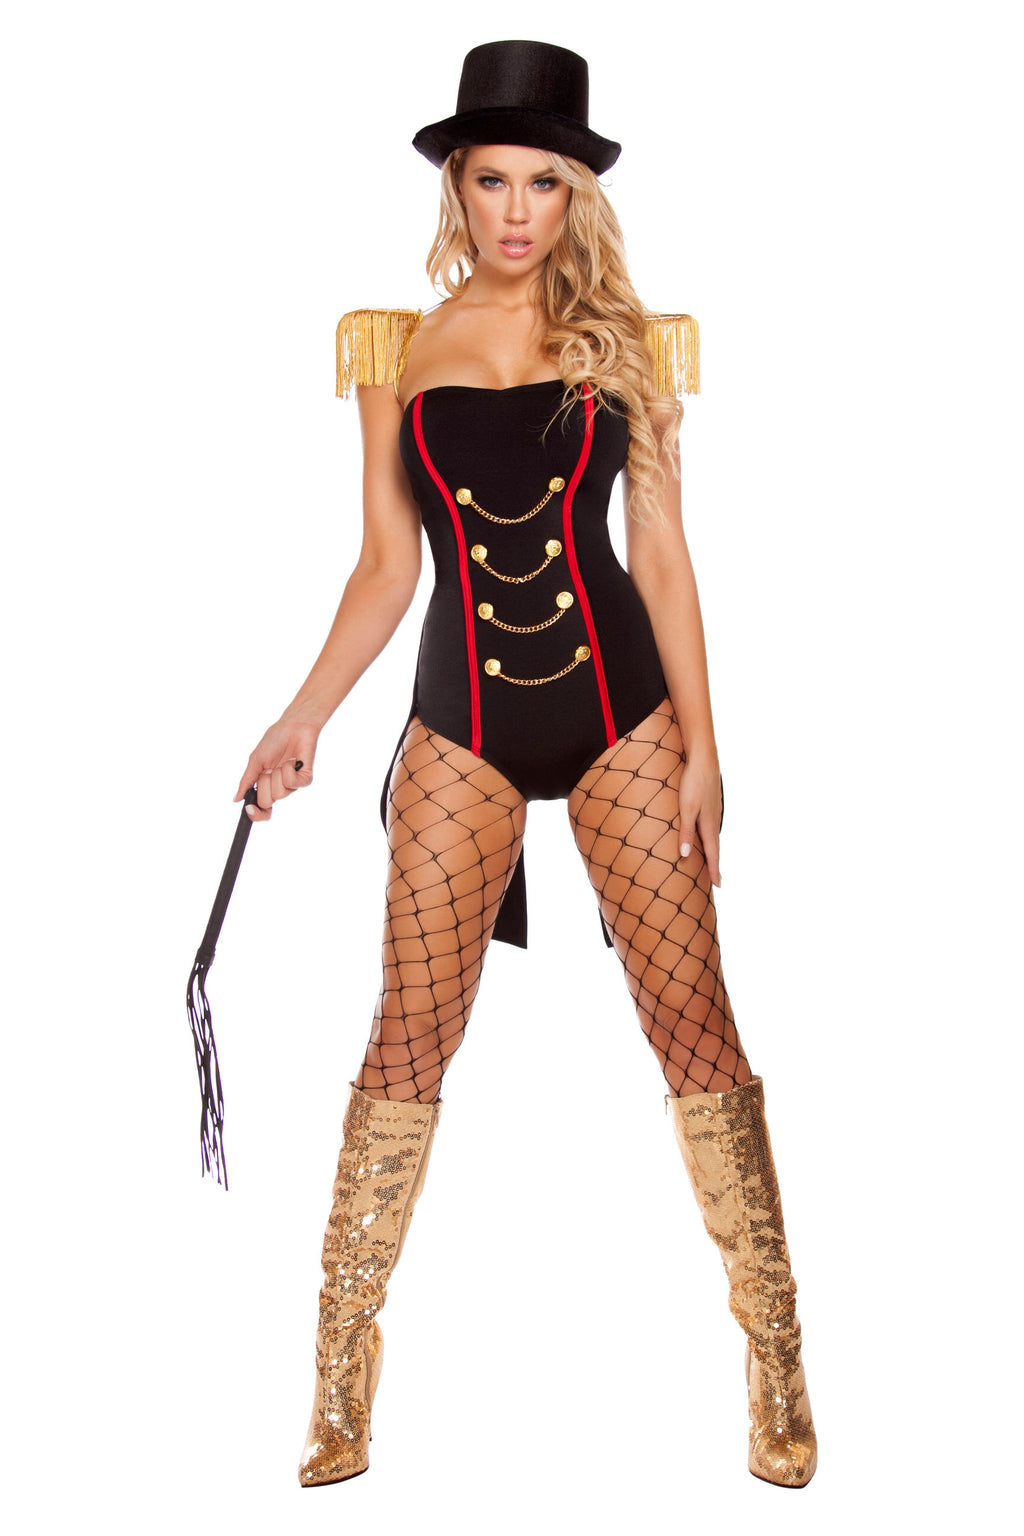 4-Piece-Circus-Ringleader-Lion-Tamer-Romper-w/-Accessories-Party-Costume